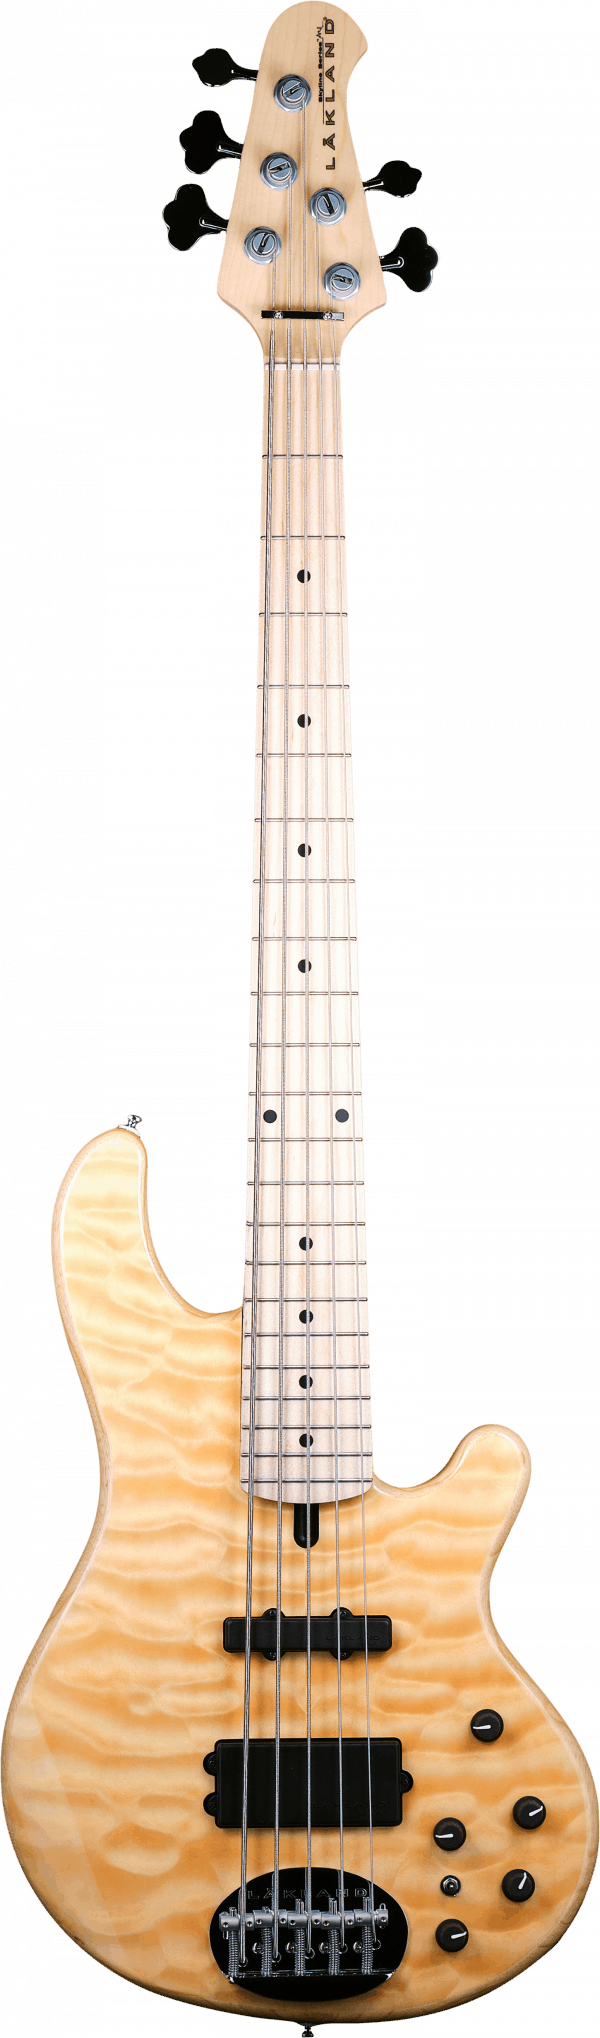 Lakland Skyline 55-02 Deluxe Quilted Maple